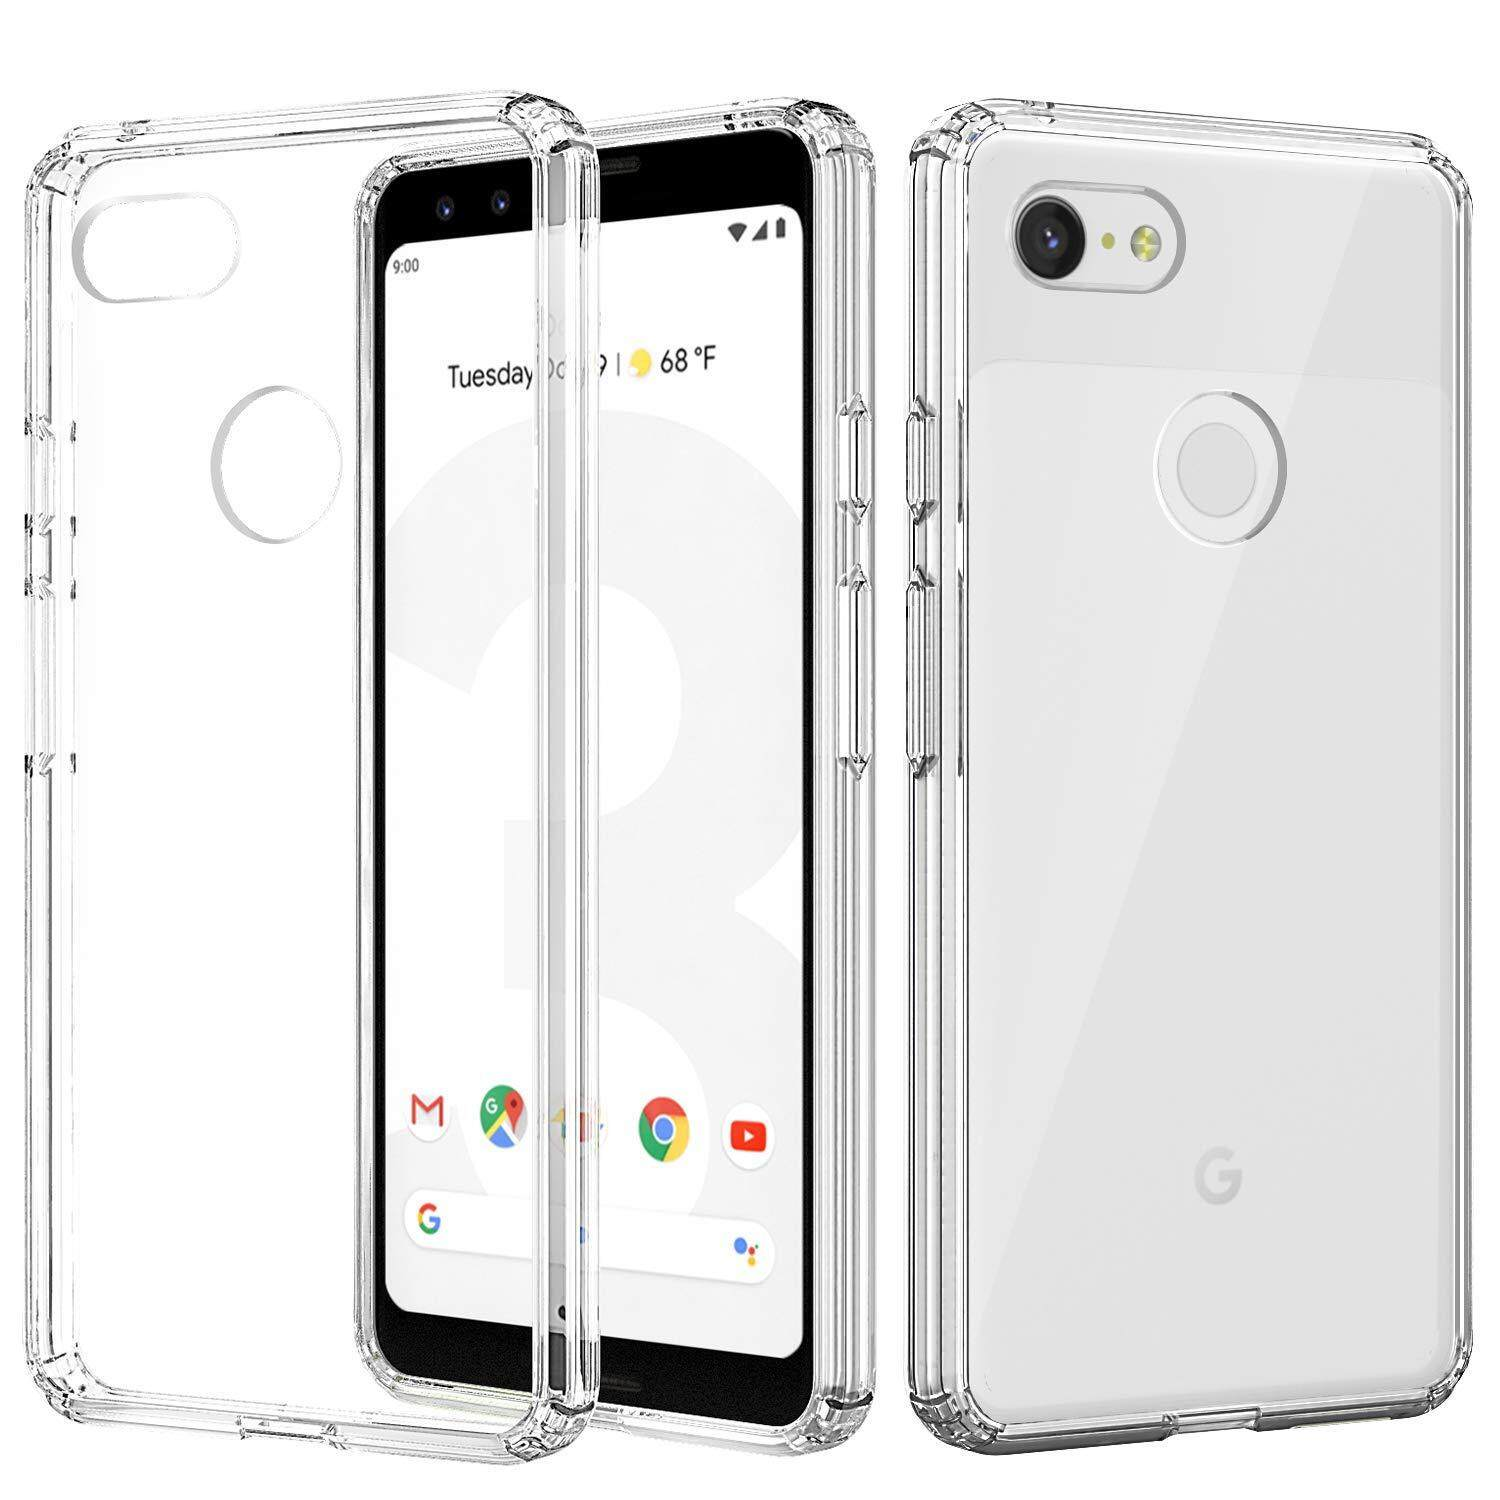 The Complete Protection Case Iphone Xr Spigen Clear Anti Shock Ultra Hybrid Original Casing Matte Black For Google Pixel 3 Tpu Bumper Cushion Cover Protective